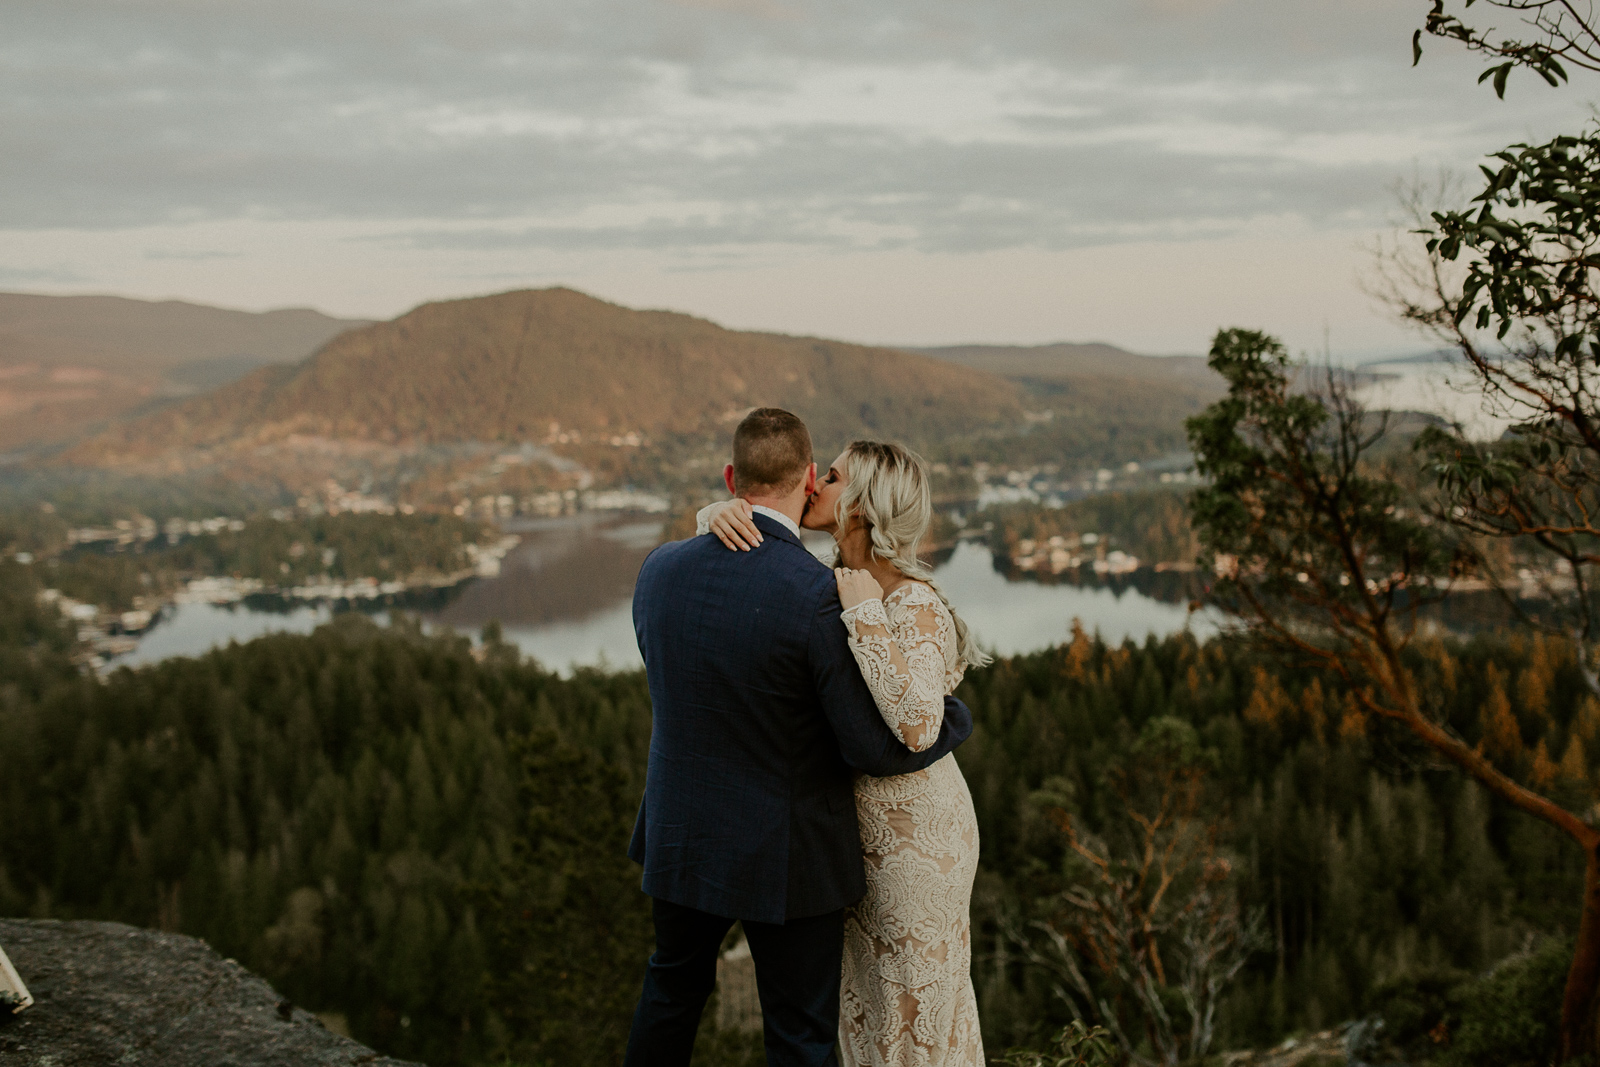 Luke Lambertson Photo_BritishColumbia_Canada_AdventurousCouple_Elopement_IMG-8557.jpg